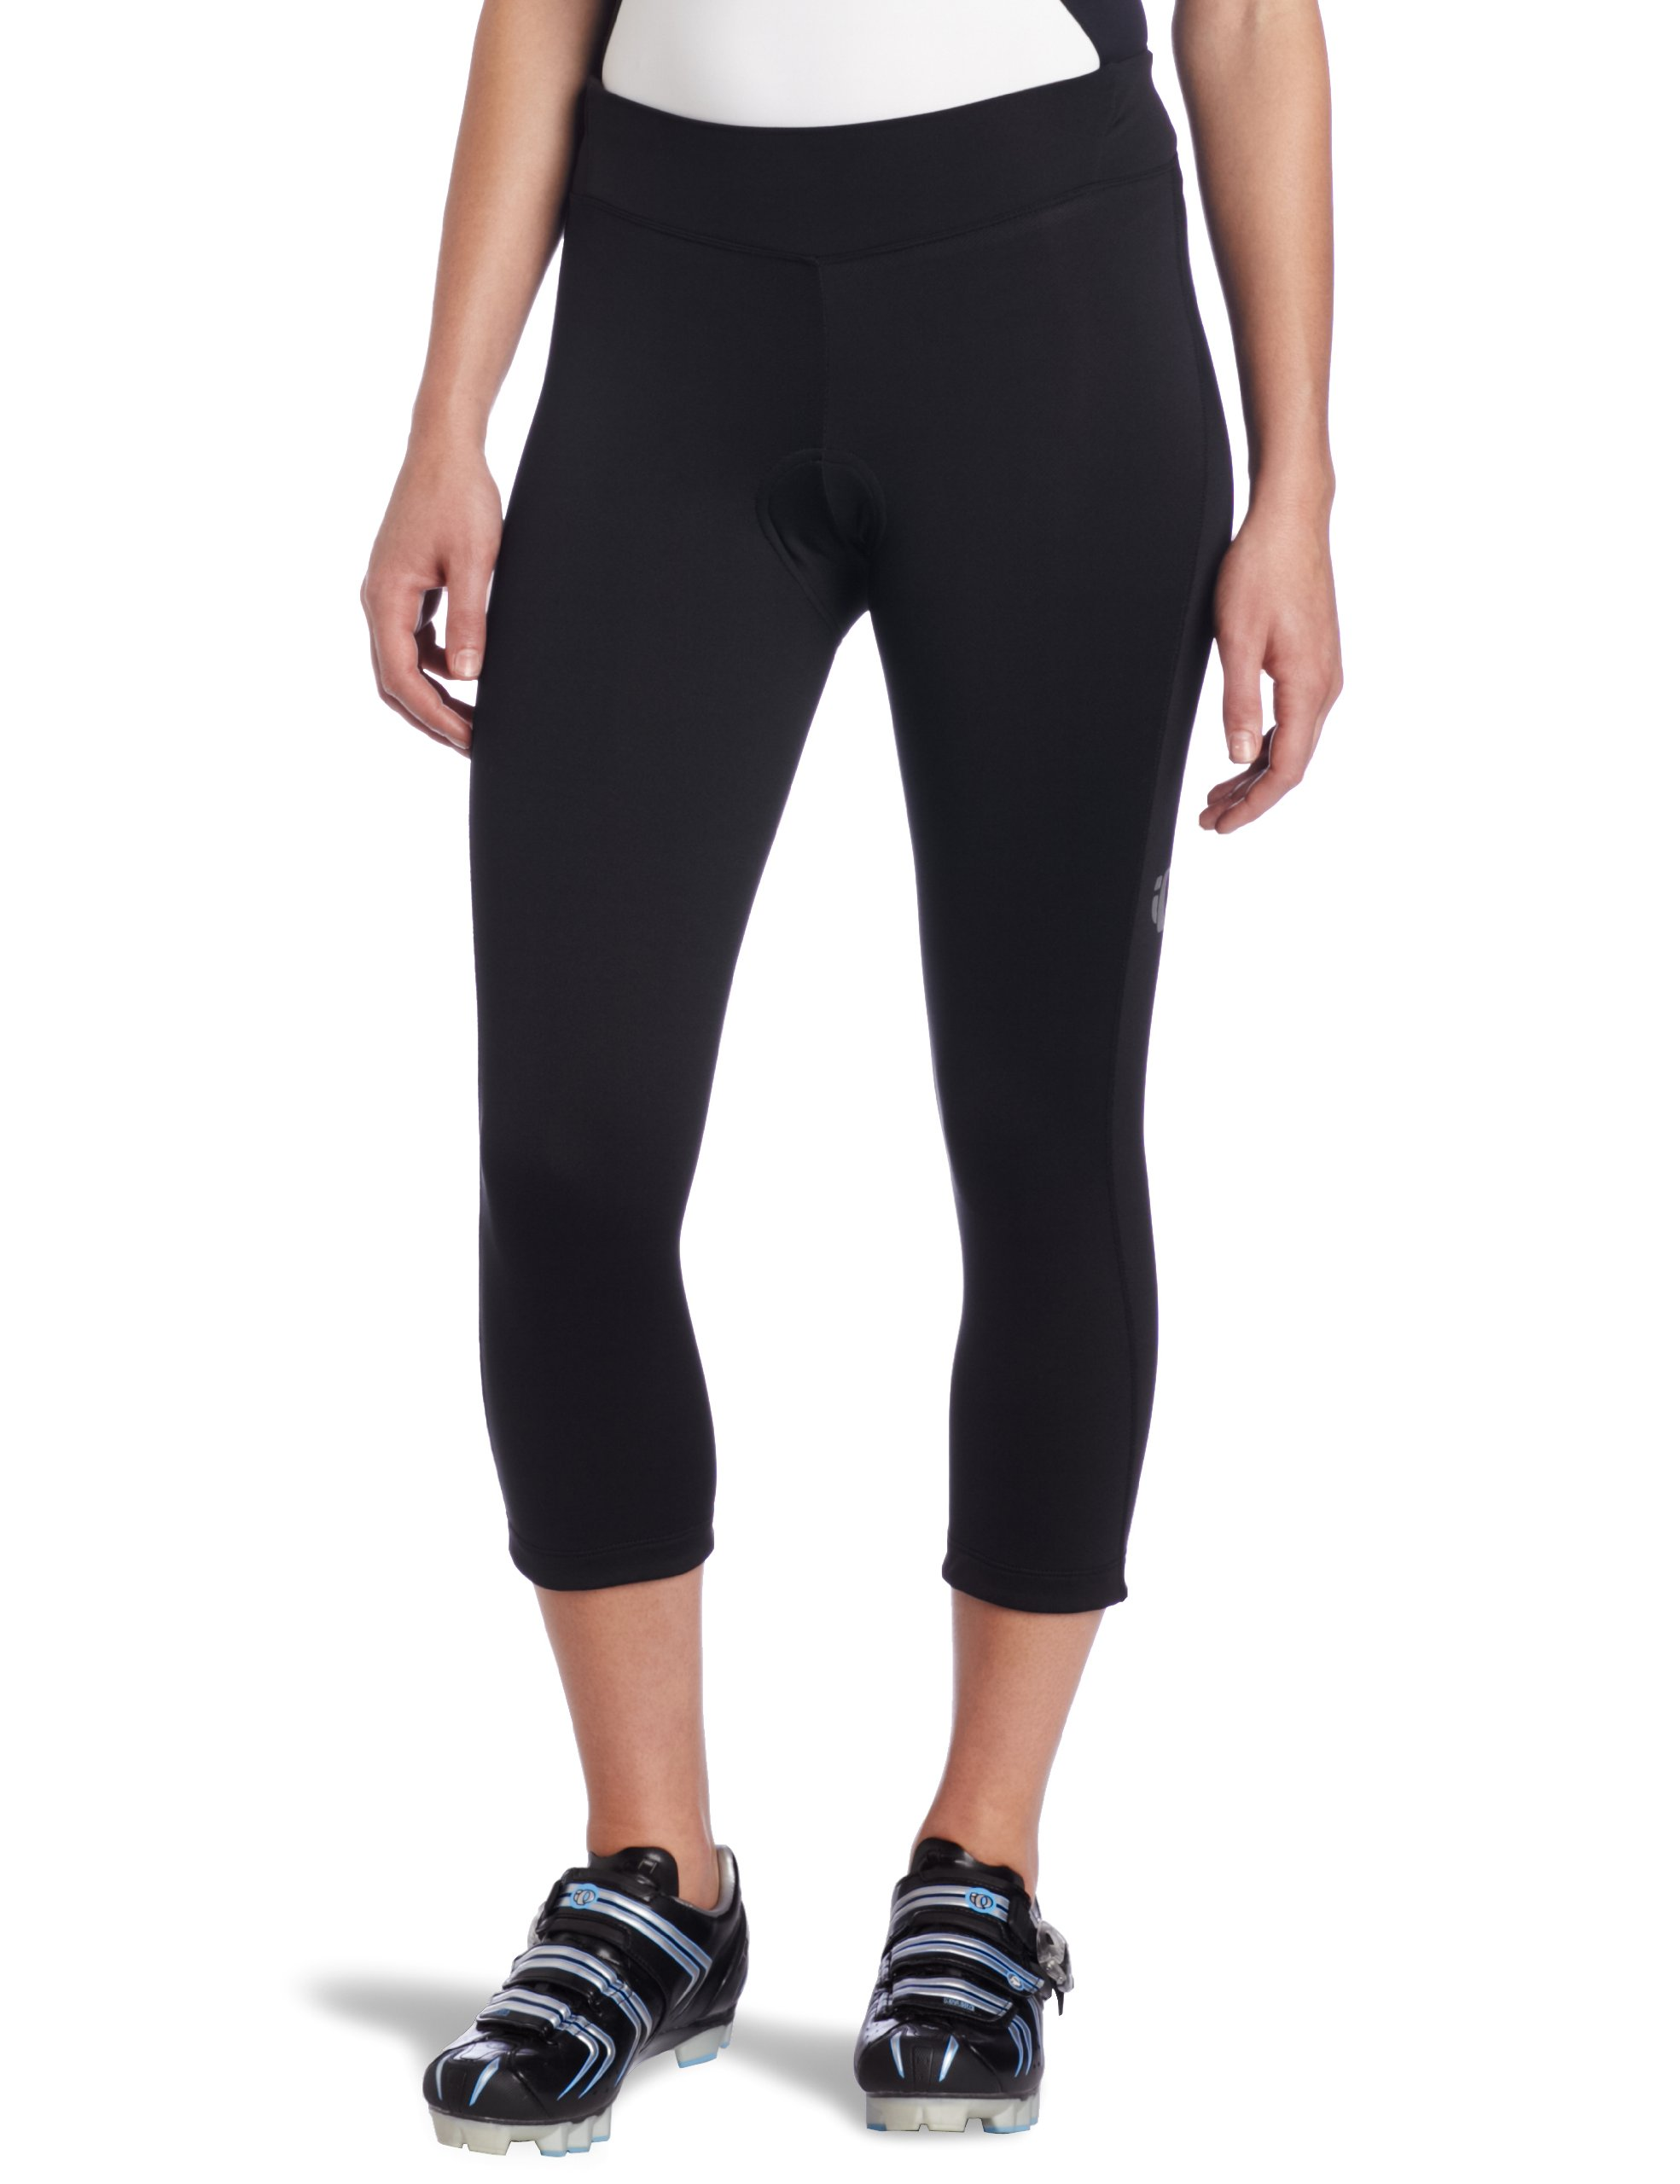 Pearl Izumi Women's Sugar Thermal Cycling 3-Quater Tight, Black, Small by PEARL IZUMI